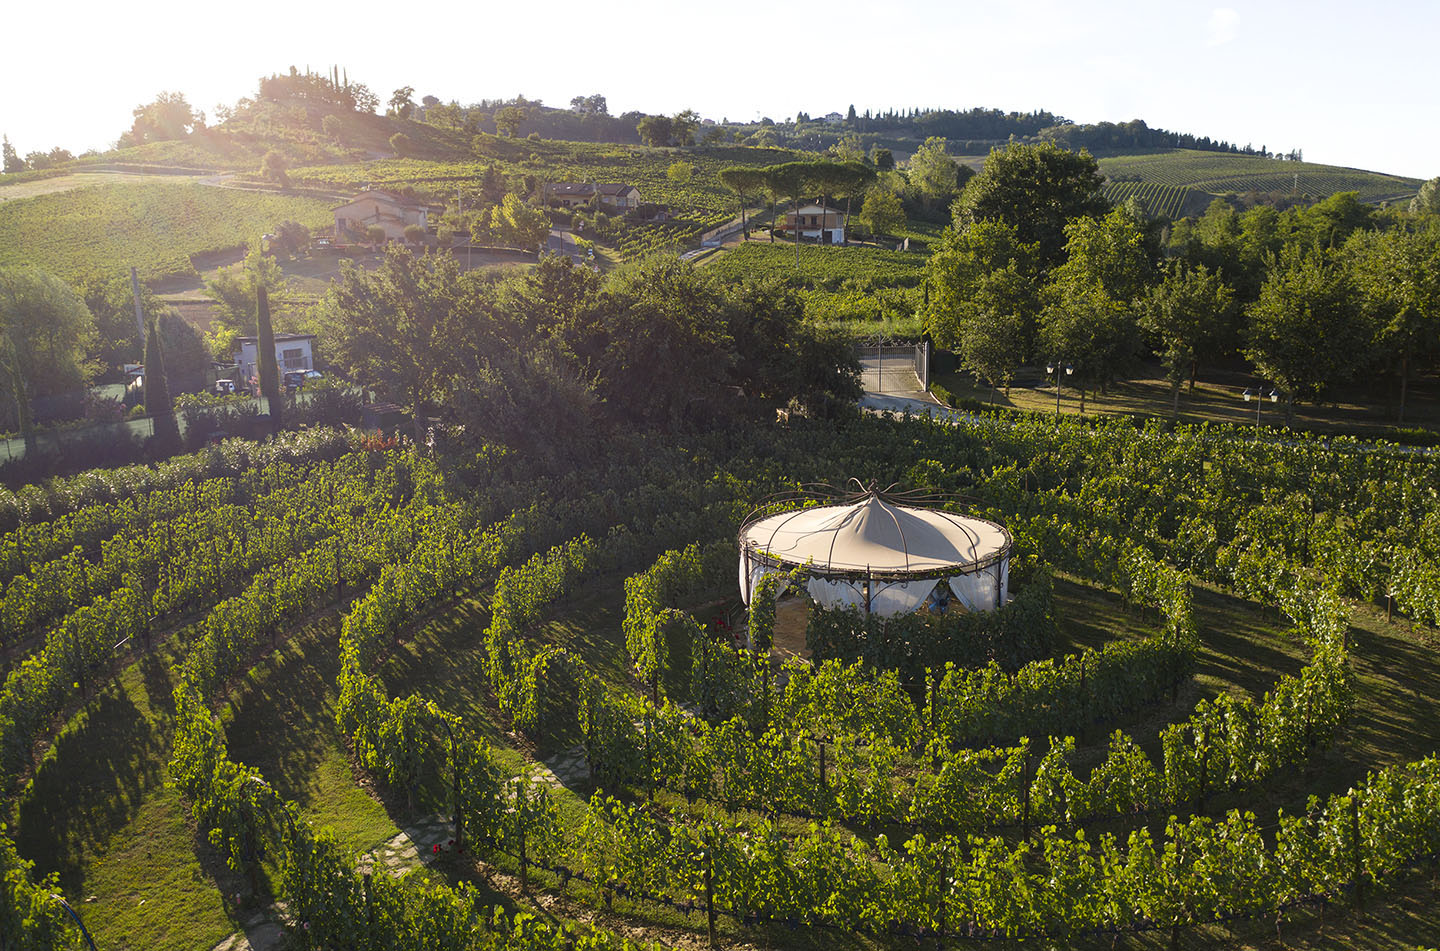 Live the vineyard life in Tenuta Torciano Winery